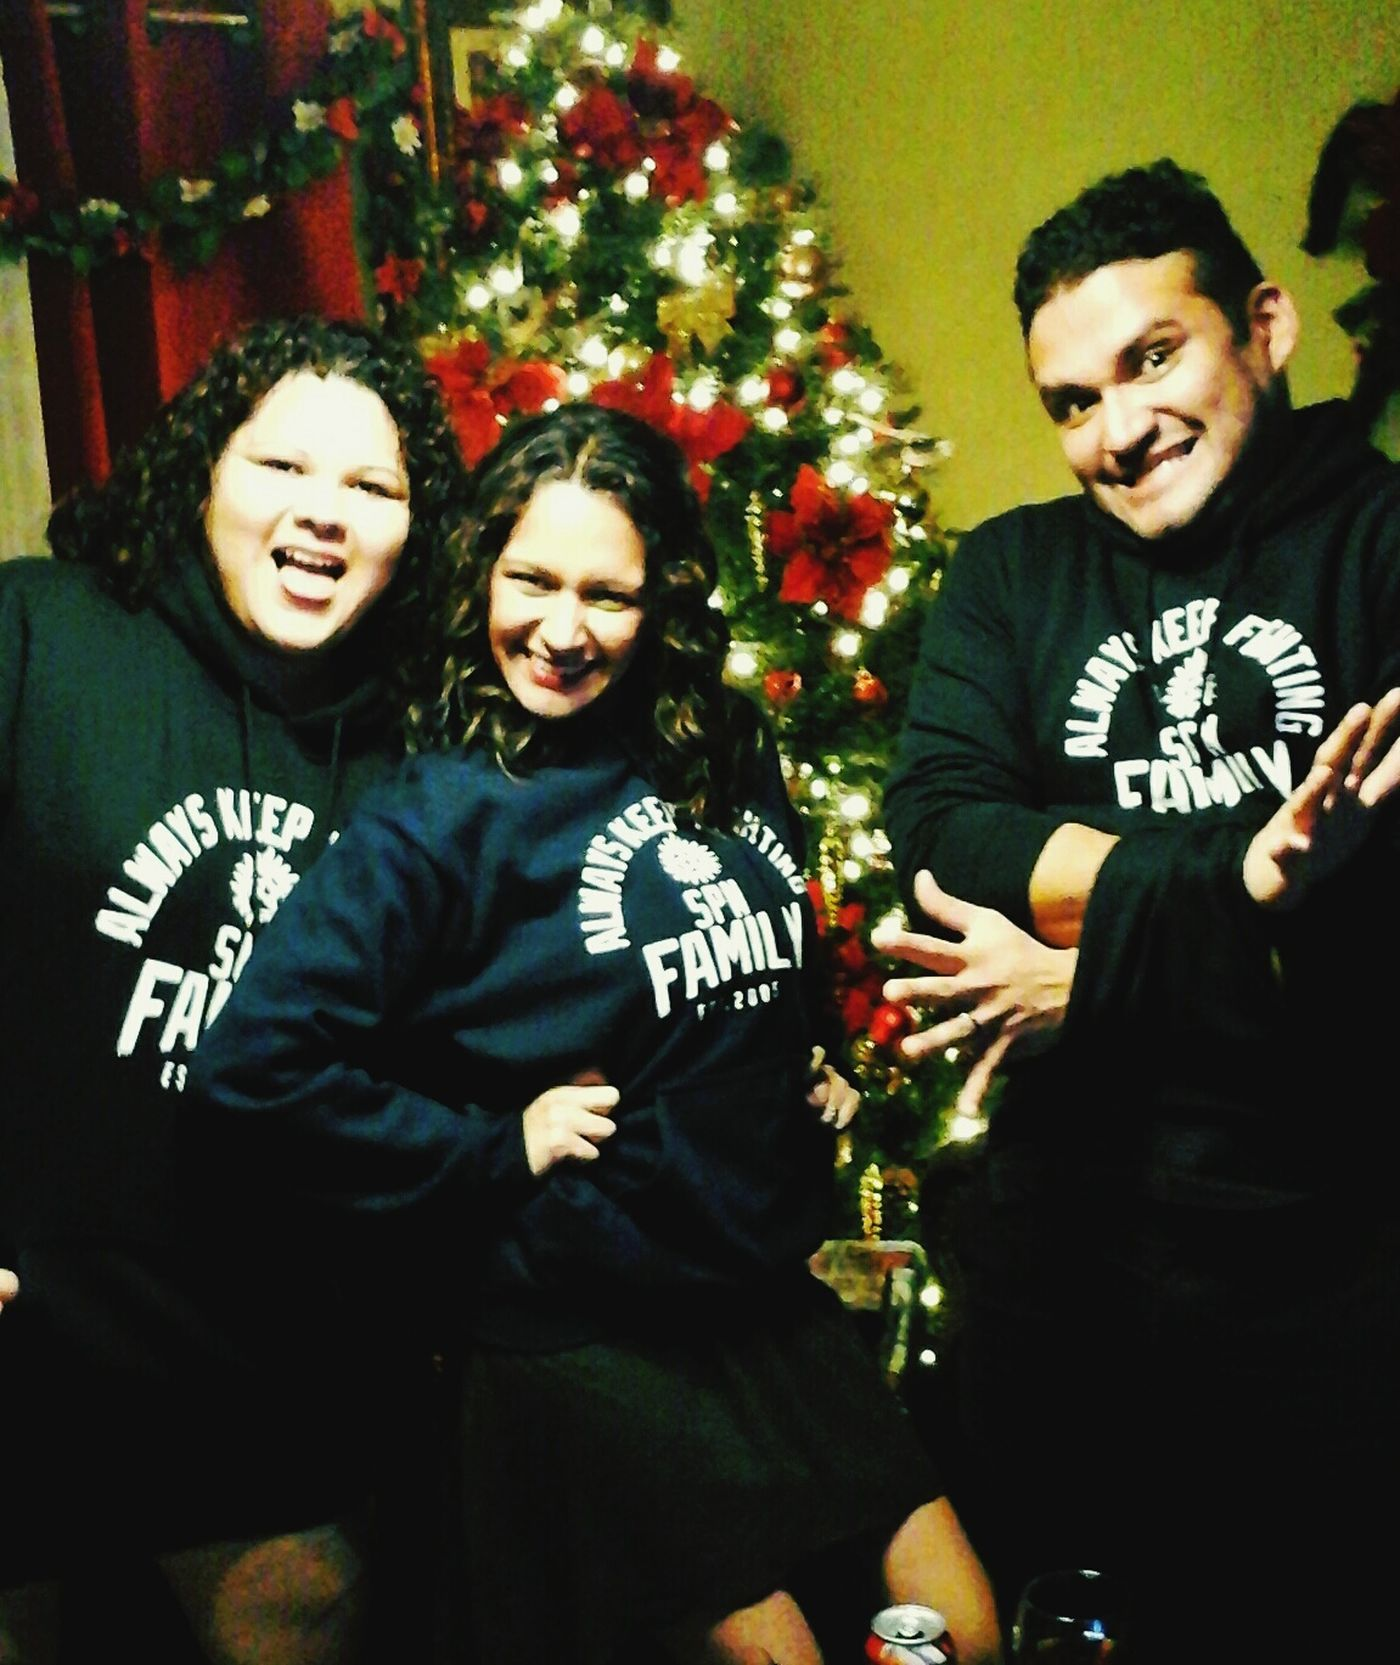 Not only are they my friends but my siblings, this picture may not be as creative as some but they show how fun we are together. We are wearing Always Keep Fighting sweatershirts this means that I had a struggle with my inner demons but with them I survived. Even if I didn't want to keep fighting they kept fighting for me. I love them with all my heart and I am eternity grateful that I am their sister 💗 THESE Are My Friends Hanging Out EyeEm Best Shots Bestfriends Sibling Love Always Keep Fighting Always Keep Smiling